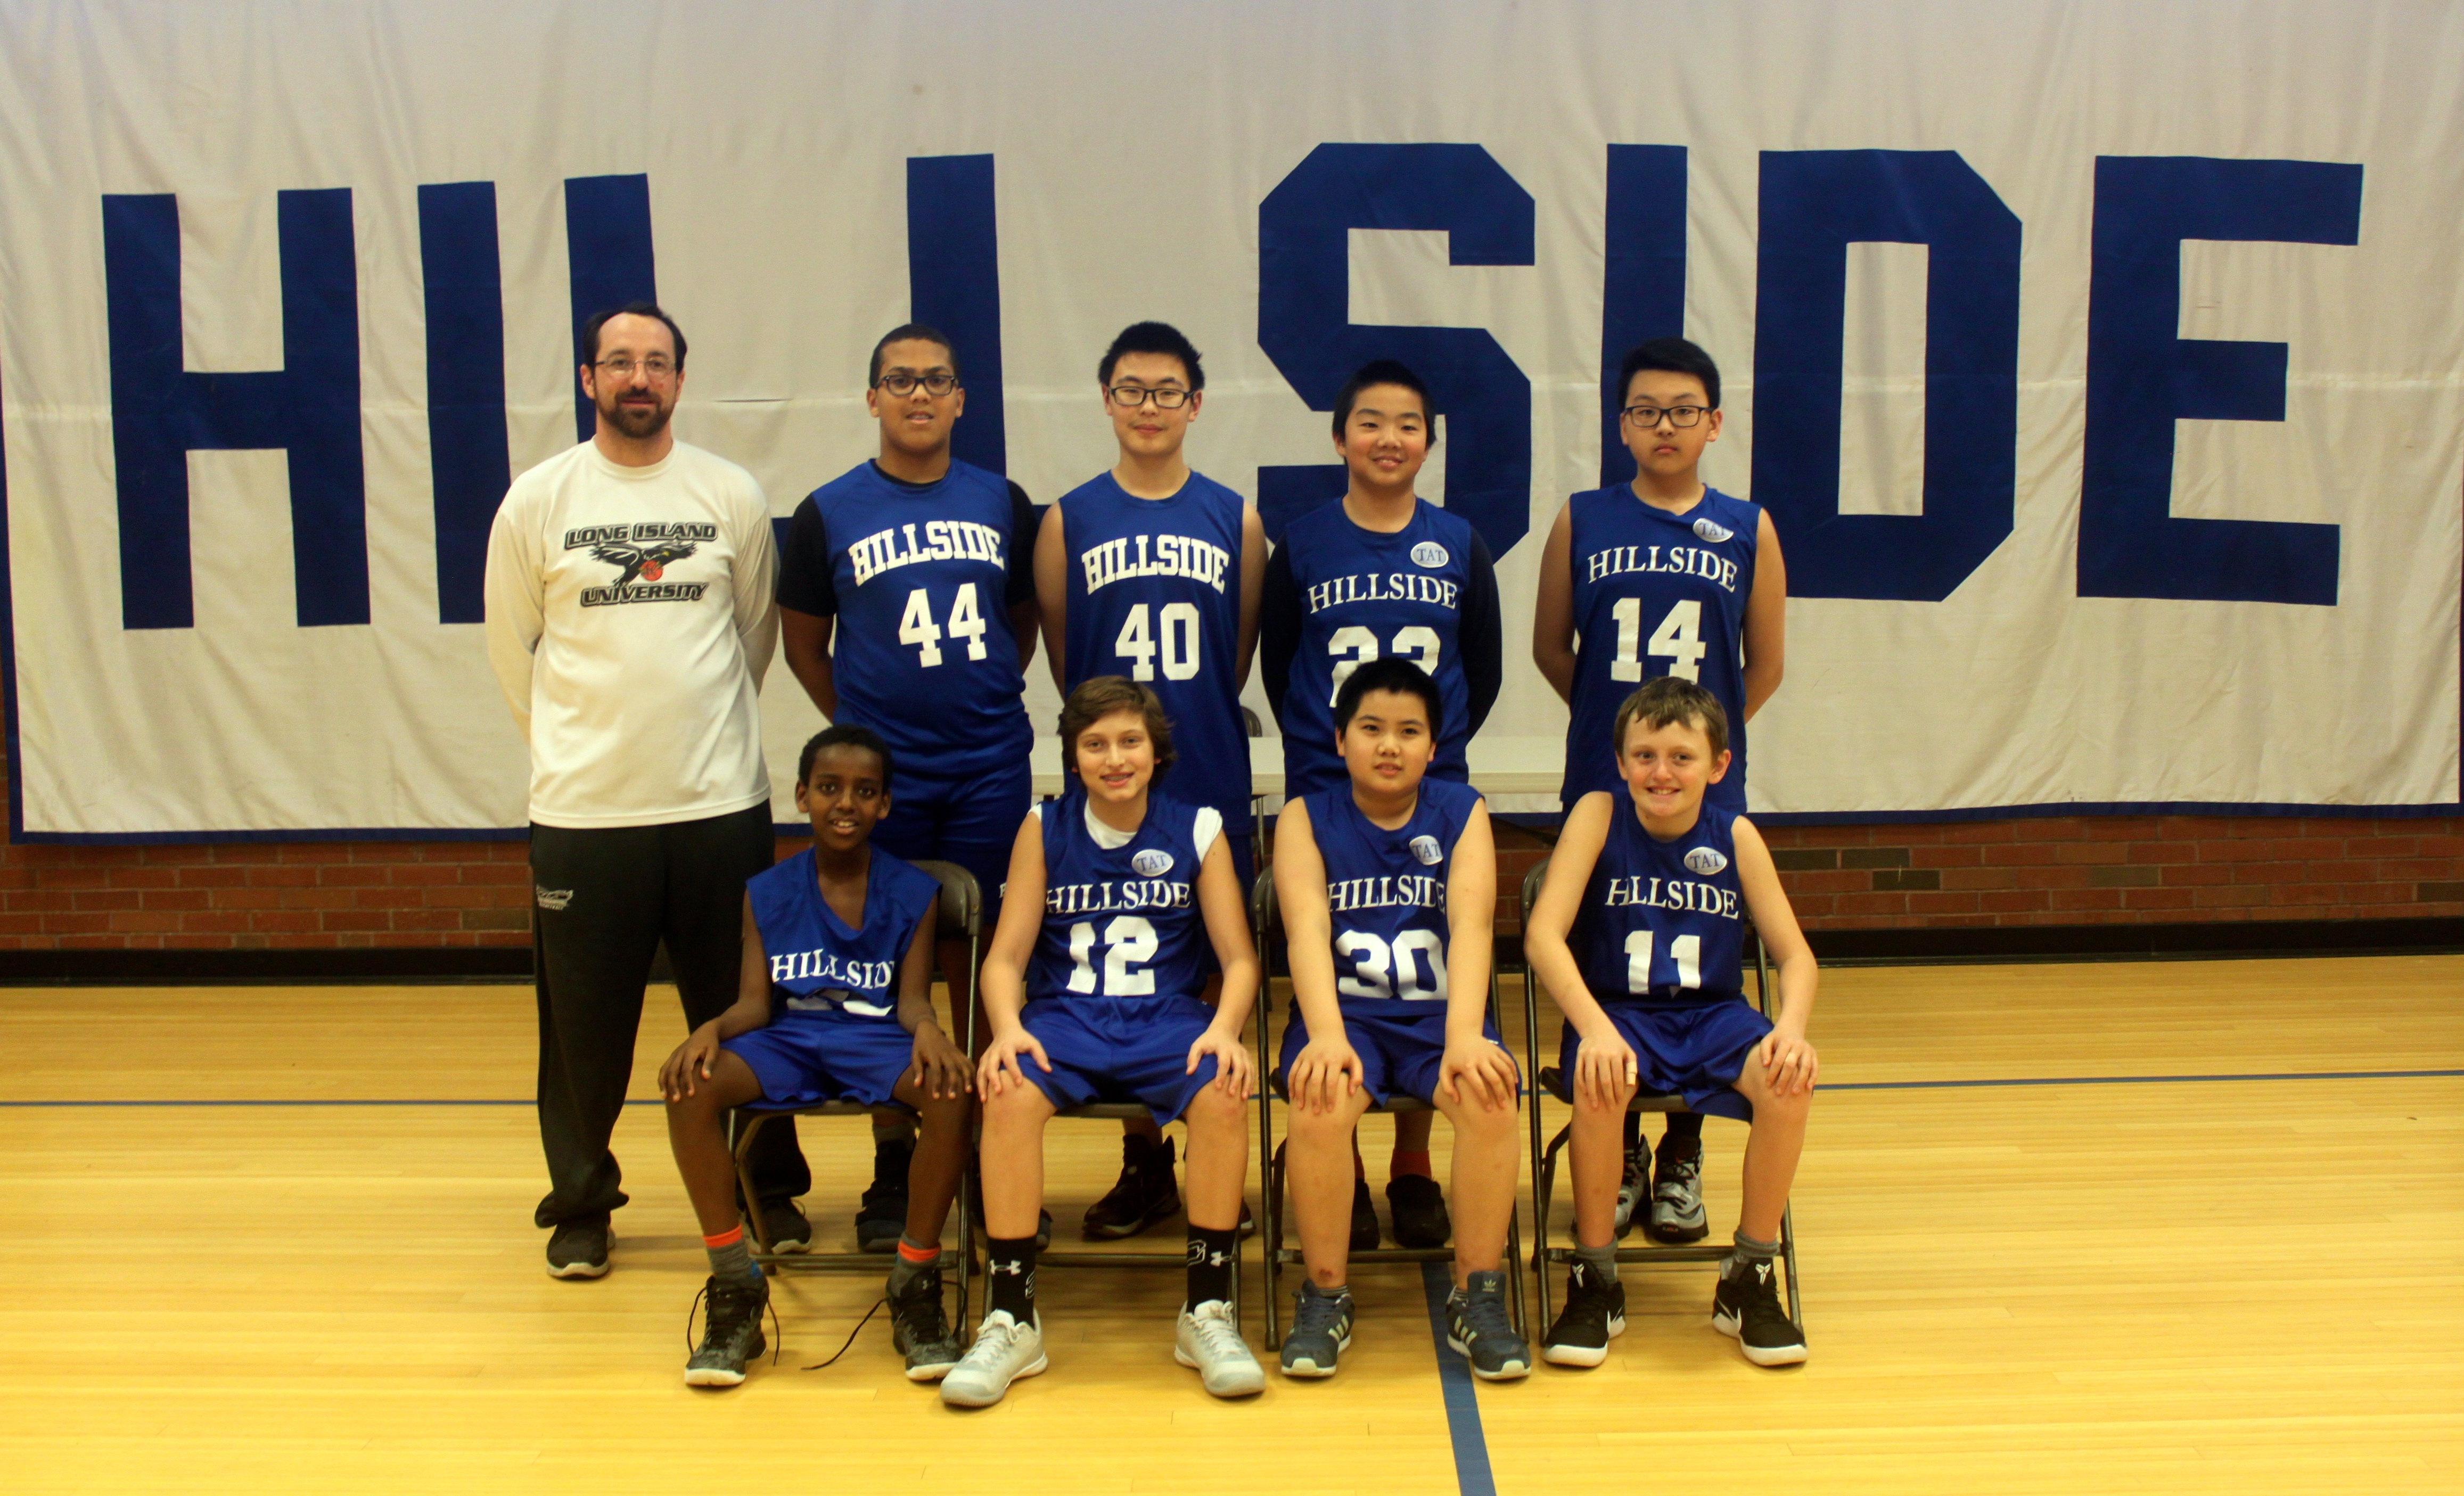 Hillside School Thirds Basketball team